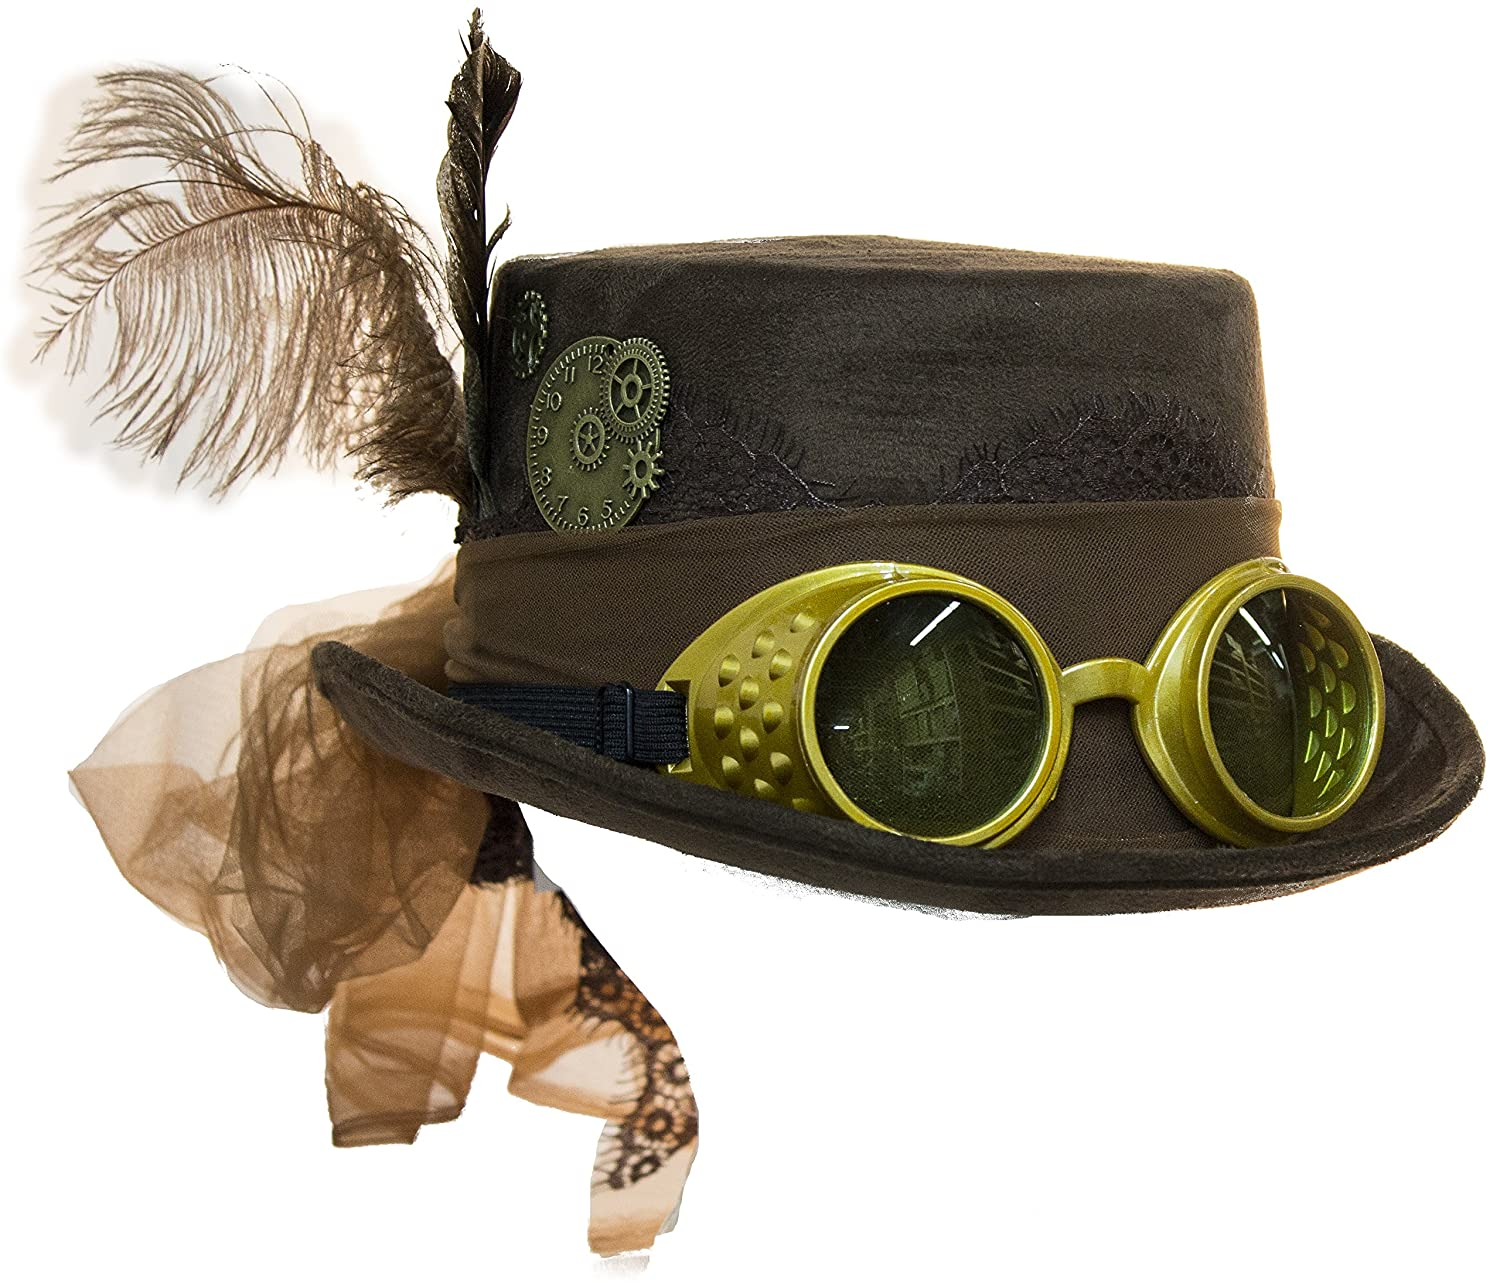 Steampunk Hats | Top Hats | Bowler Deluxe Velvet 4.25 Inch Steampunk Top Hat with Removable Goggles $19.95 AT vintagedancer.com